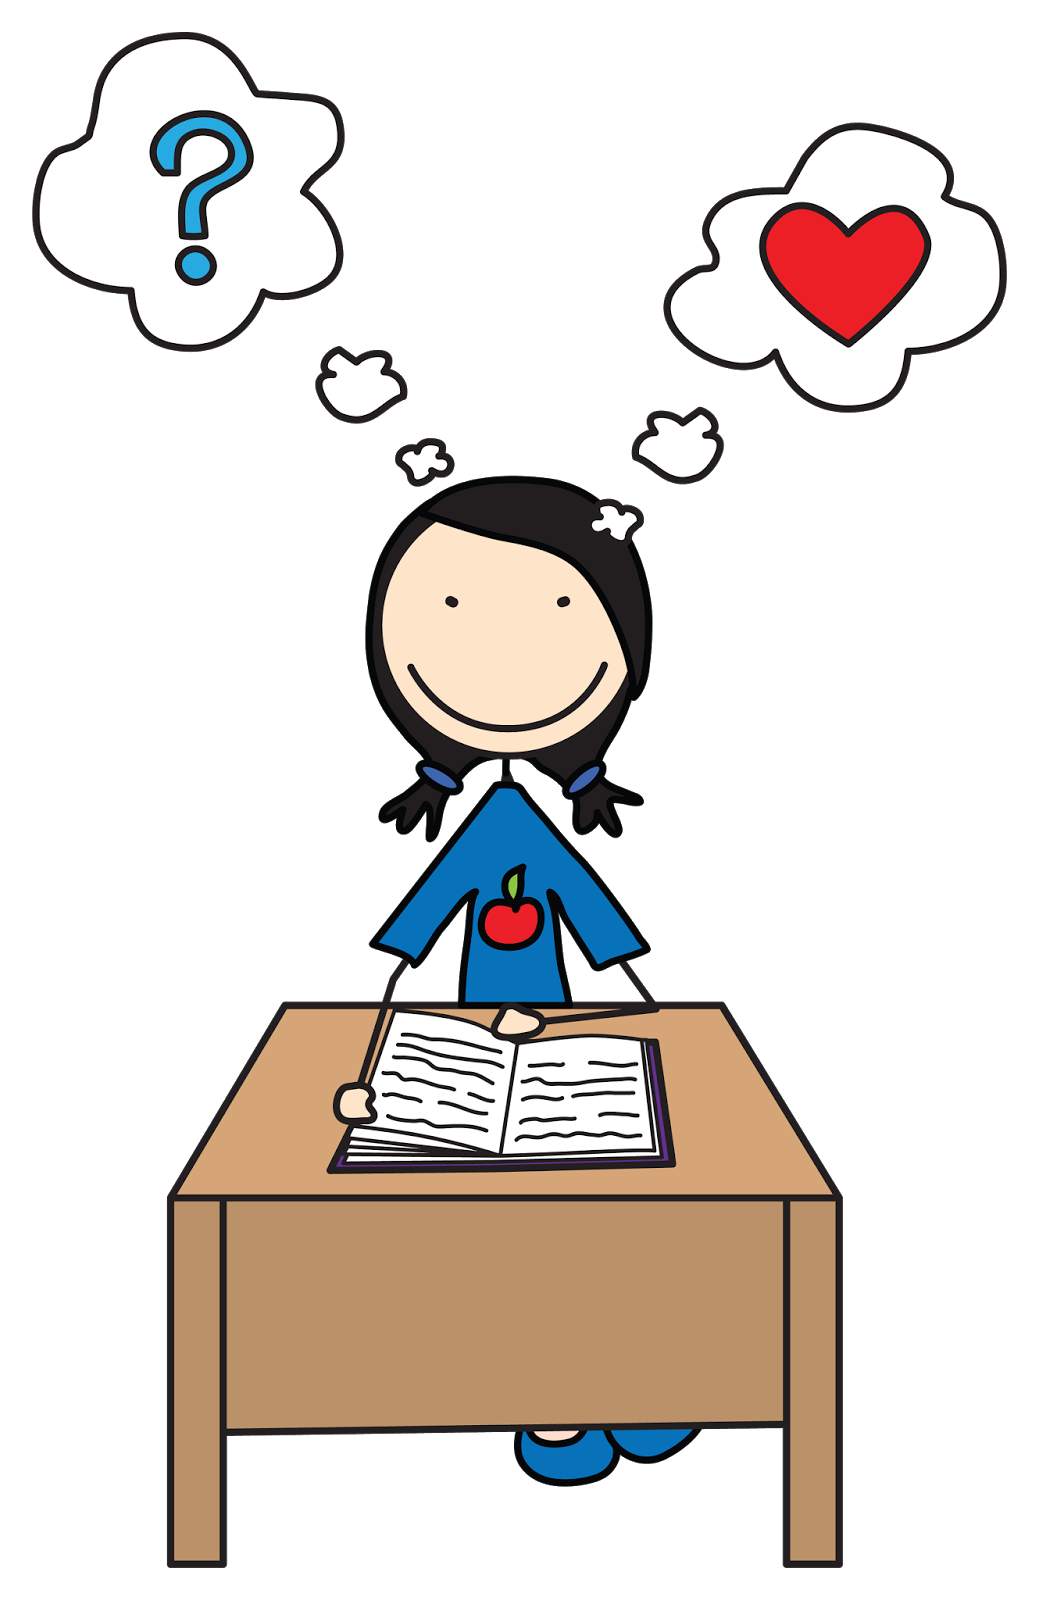 Free cartoon clipart reflecting good heart for christ png black and white stock Kids Reading And Thinking Clipart png black and white stock